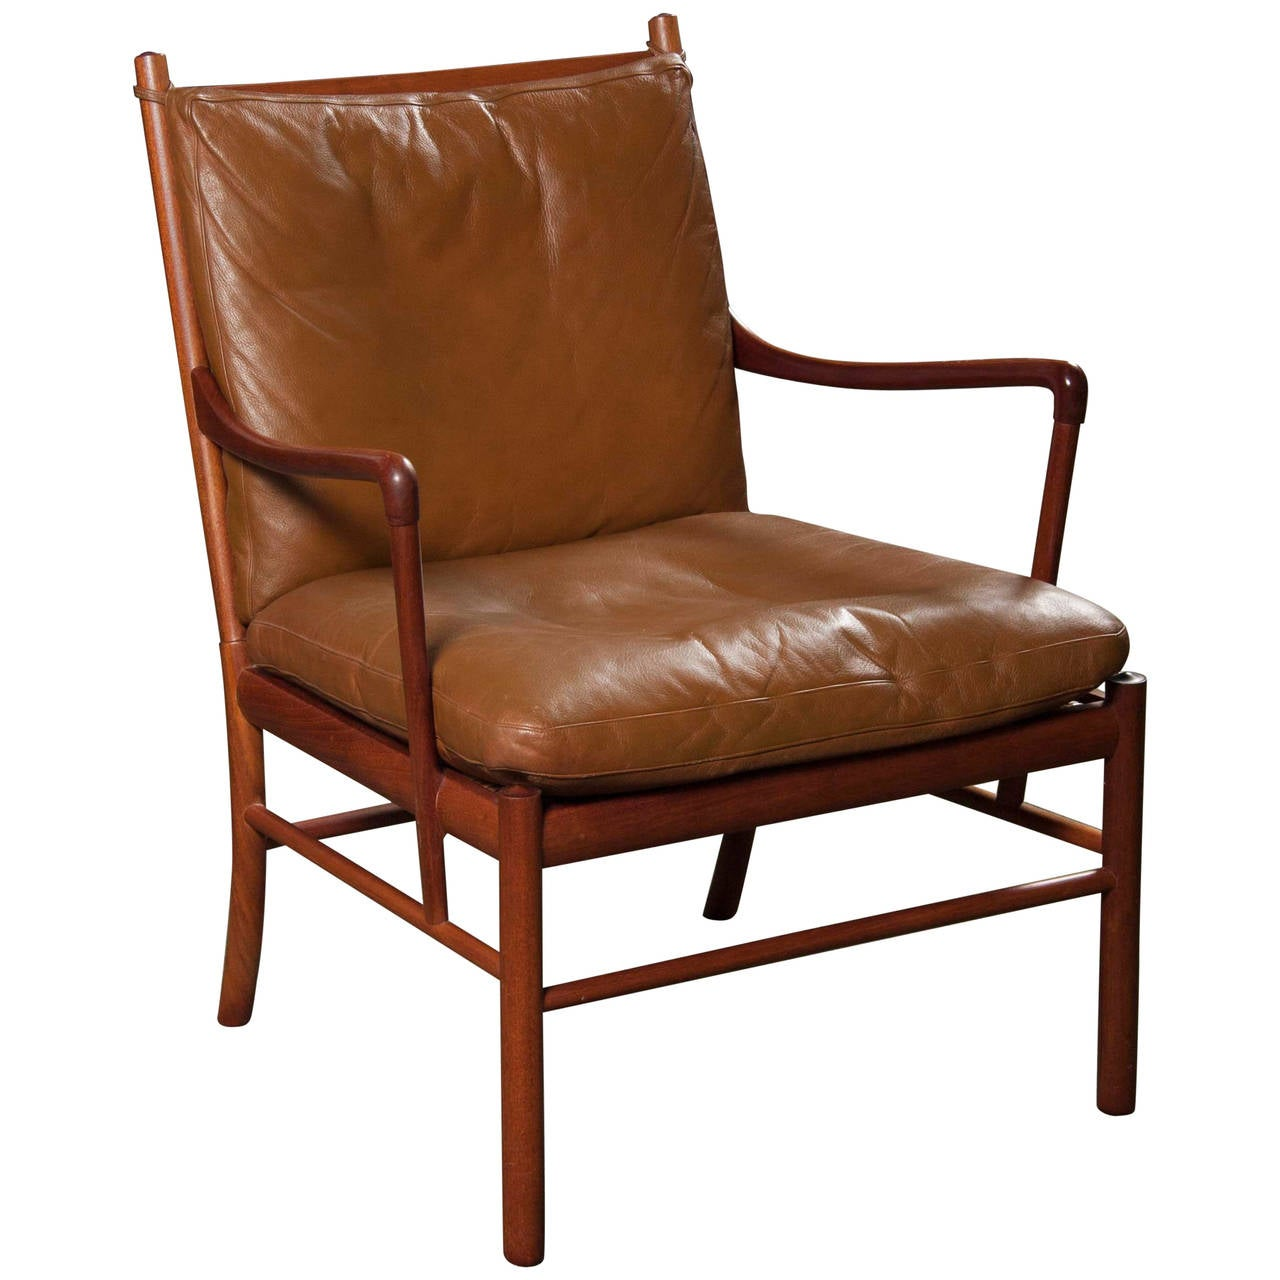 Colonial Chair Ole Wanscher Rosewood Colonial Chair Ow 149 At 1stdibs